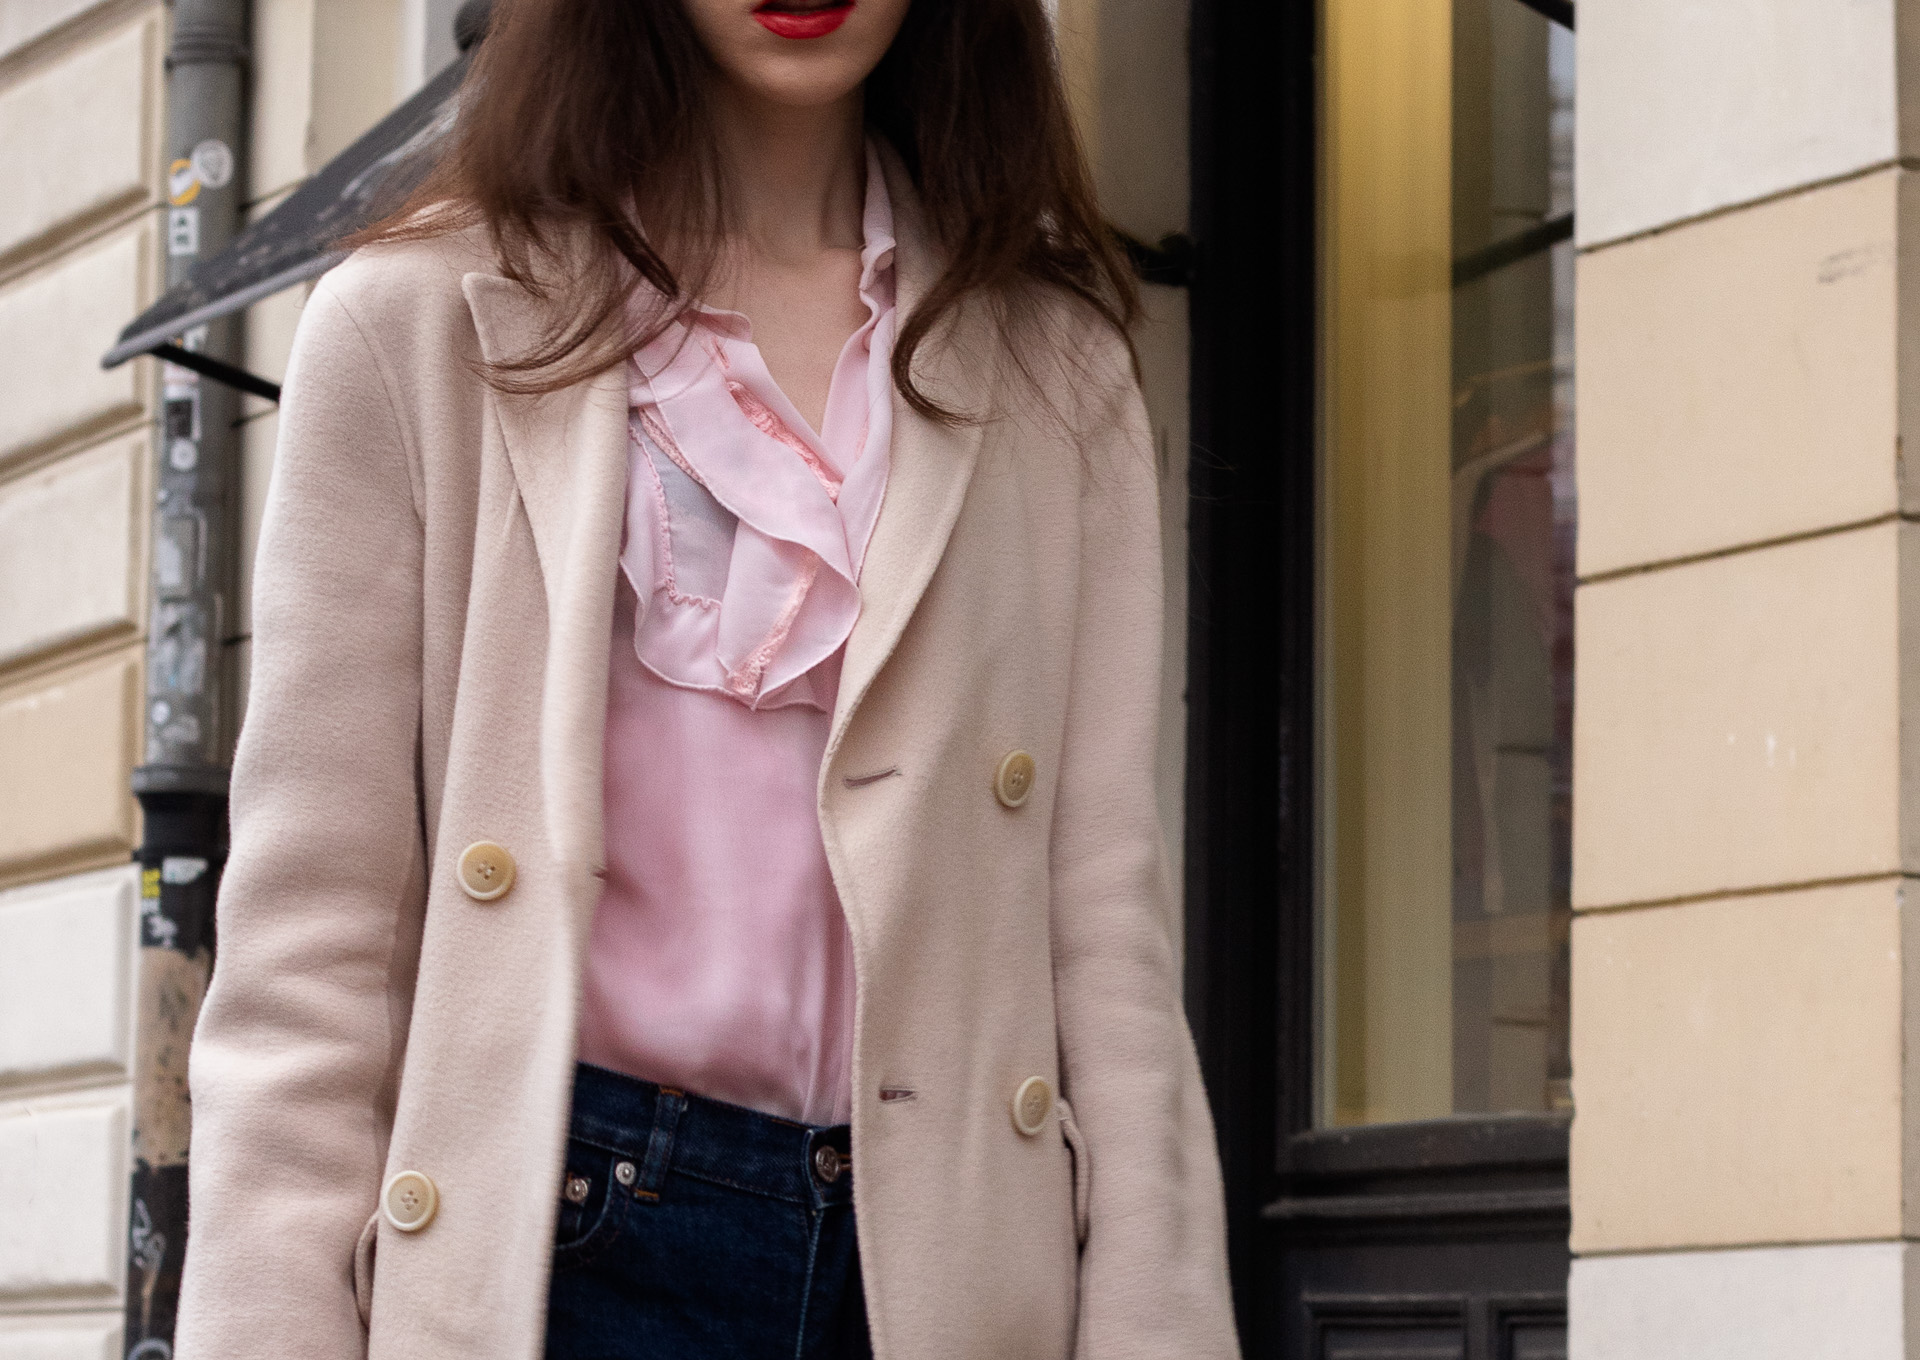 Fashion blogger Veronika Lipar of Brunette from Wall Street wearing A.P.C. navy blue jeans Weekend Max Mara double breasted coat Red Valentino pink blouse on the street in-between seasons